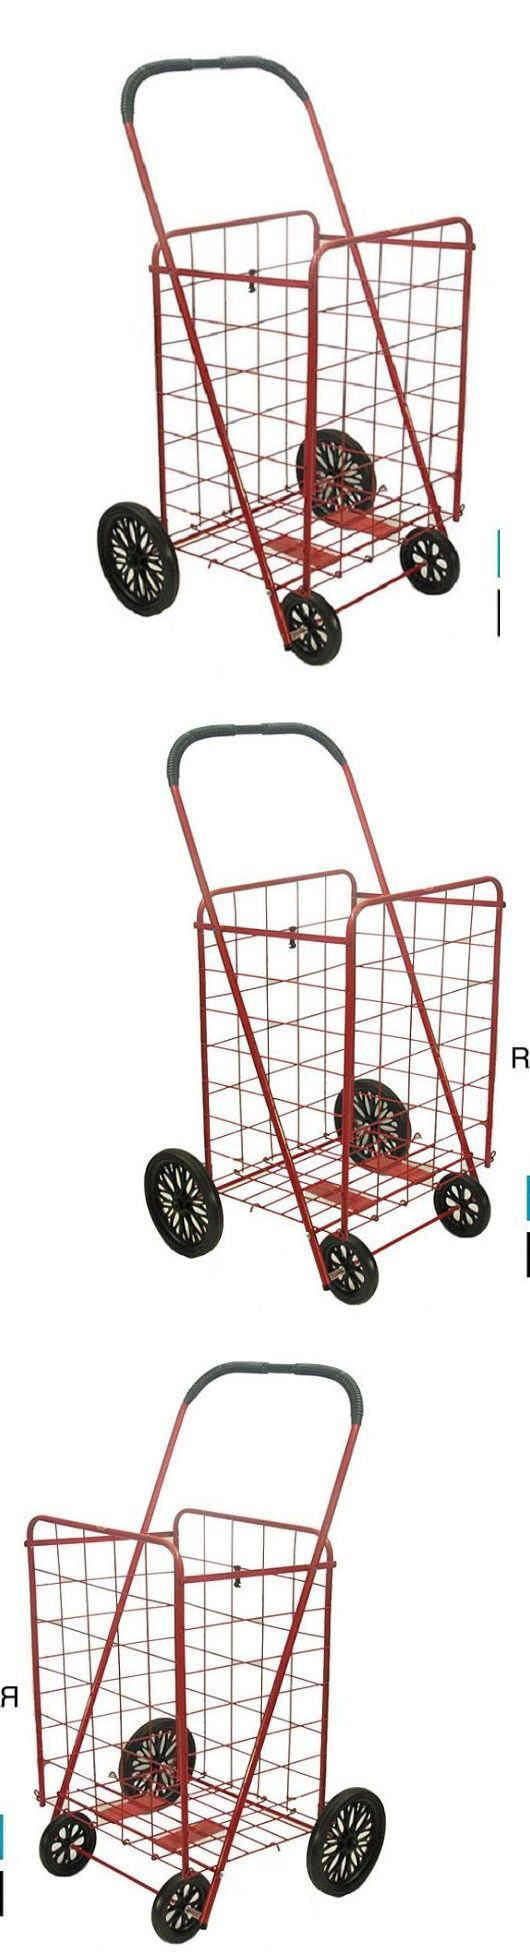 Laundry Bags 43516: Shopping Cart With Wheels Grocery Laundry Red Folding Foldable Rolling Durable -> BUY IT NOW ONLY: $44.99 on eBay!